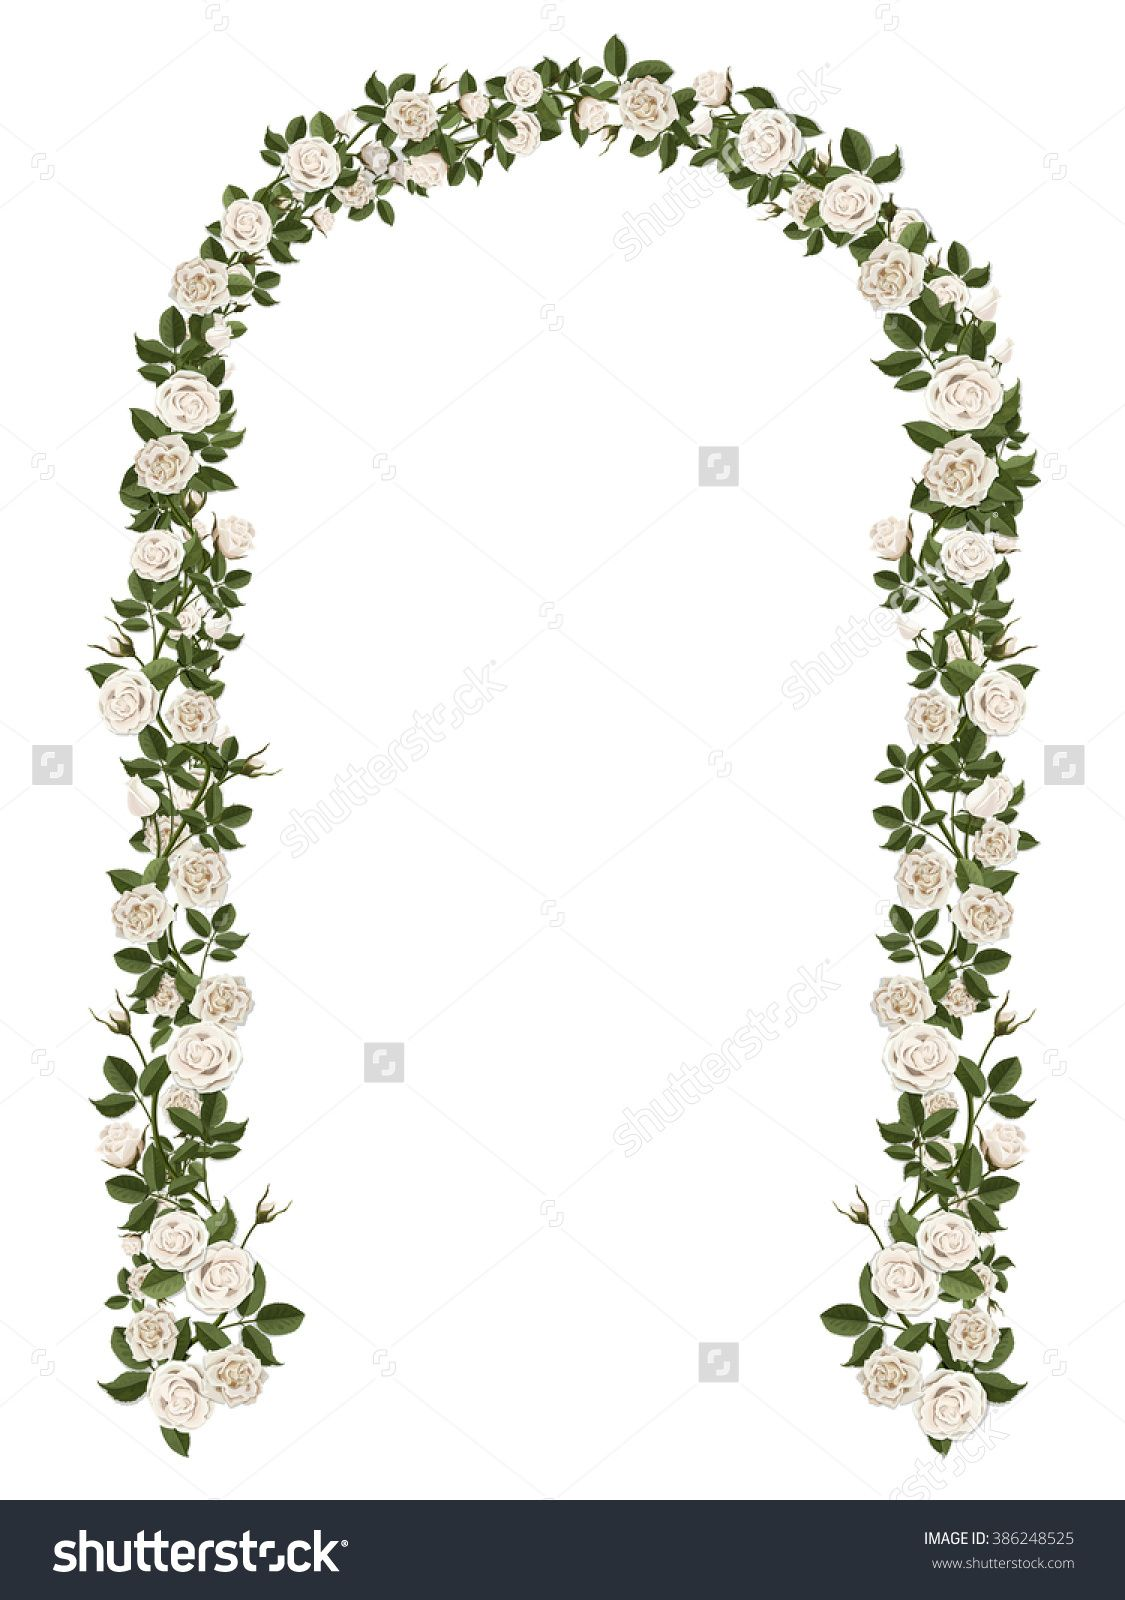 Arch Of White Climbing Roses Floral Design Wedding Decoration Vector White Climbing Roses Climbing Roses Wedding Backdrop Design